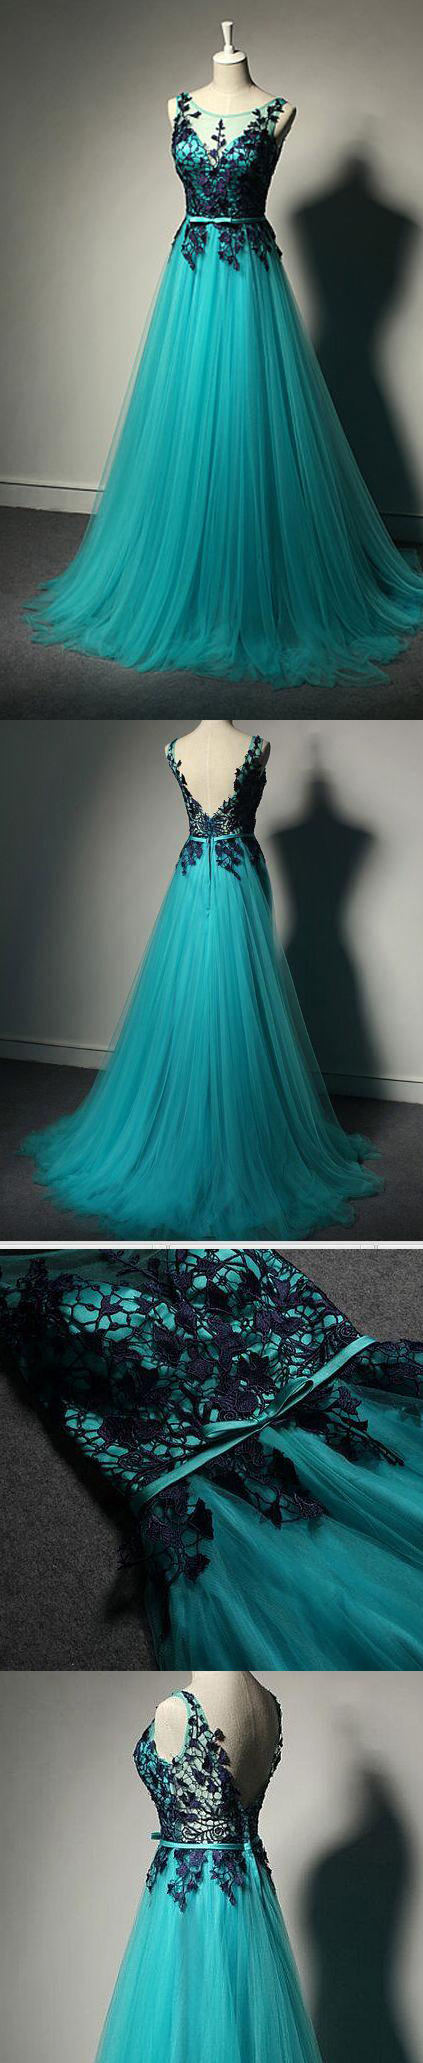 Blue and green prom dress  Hot Sales Navy Blue Lace Green Prom Dresses Evening Dress Back V